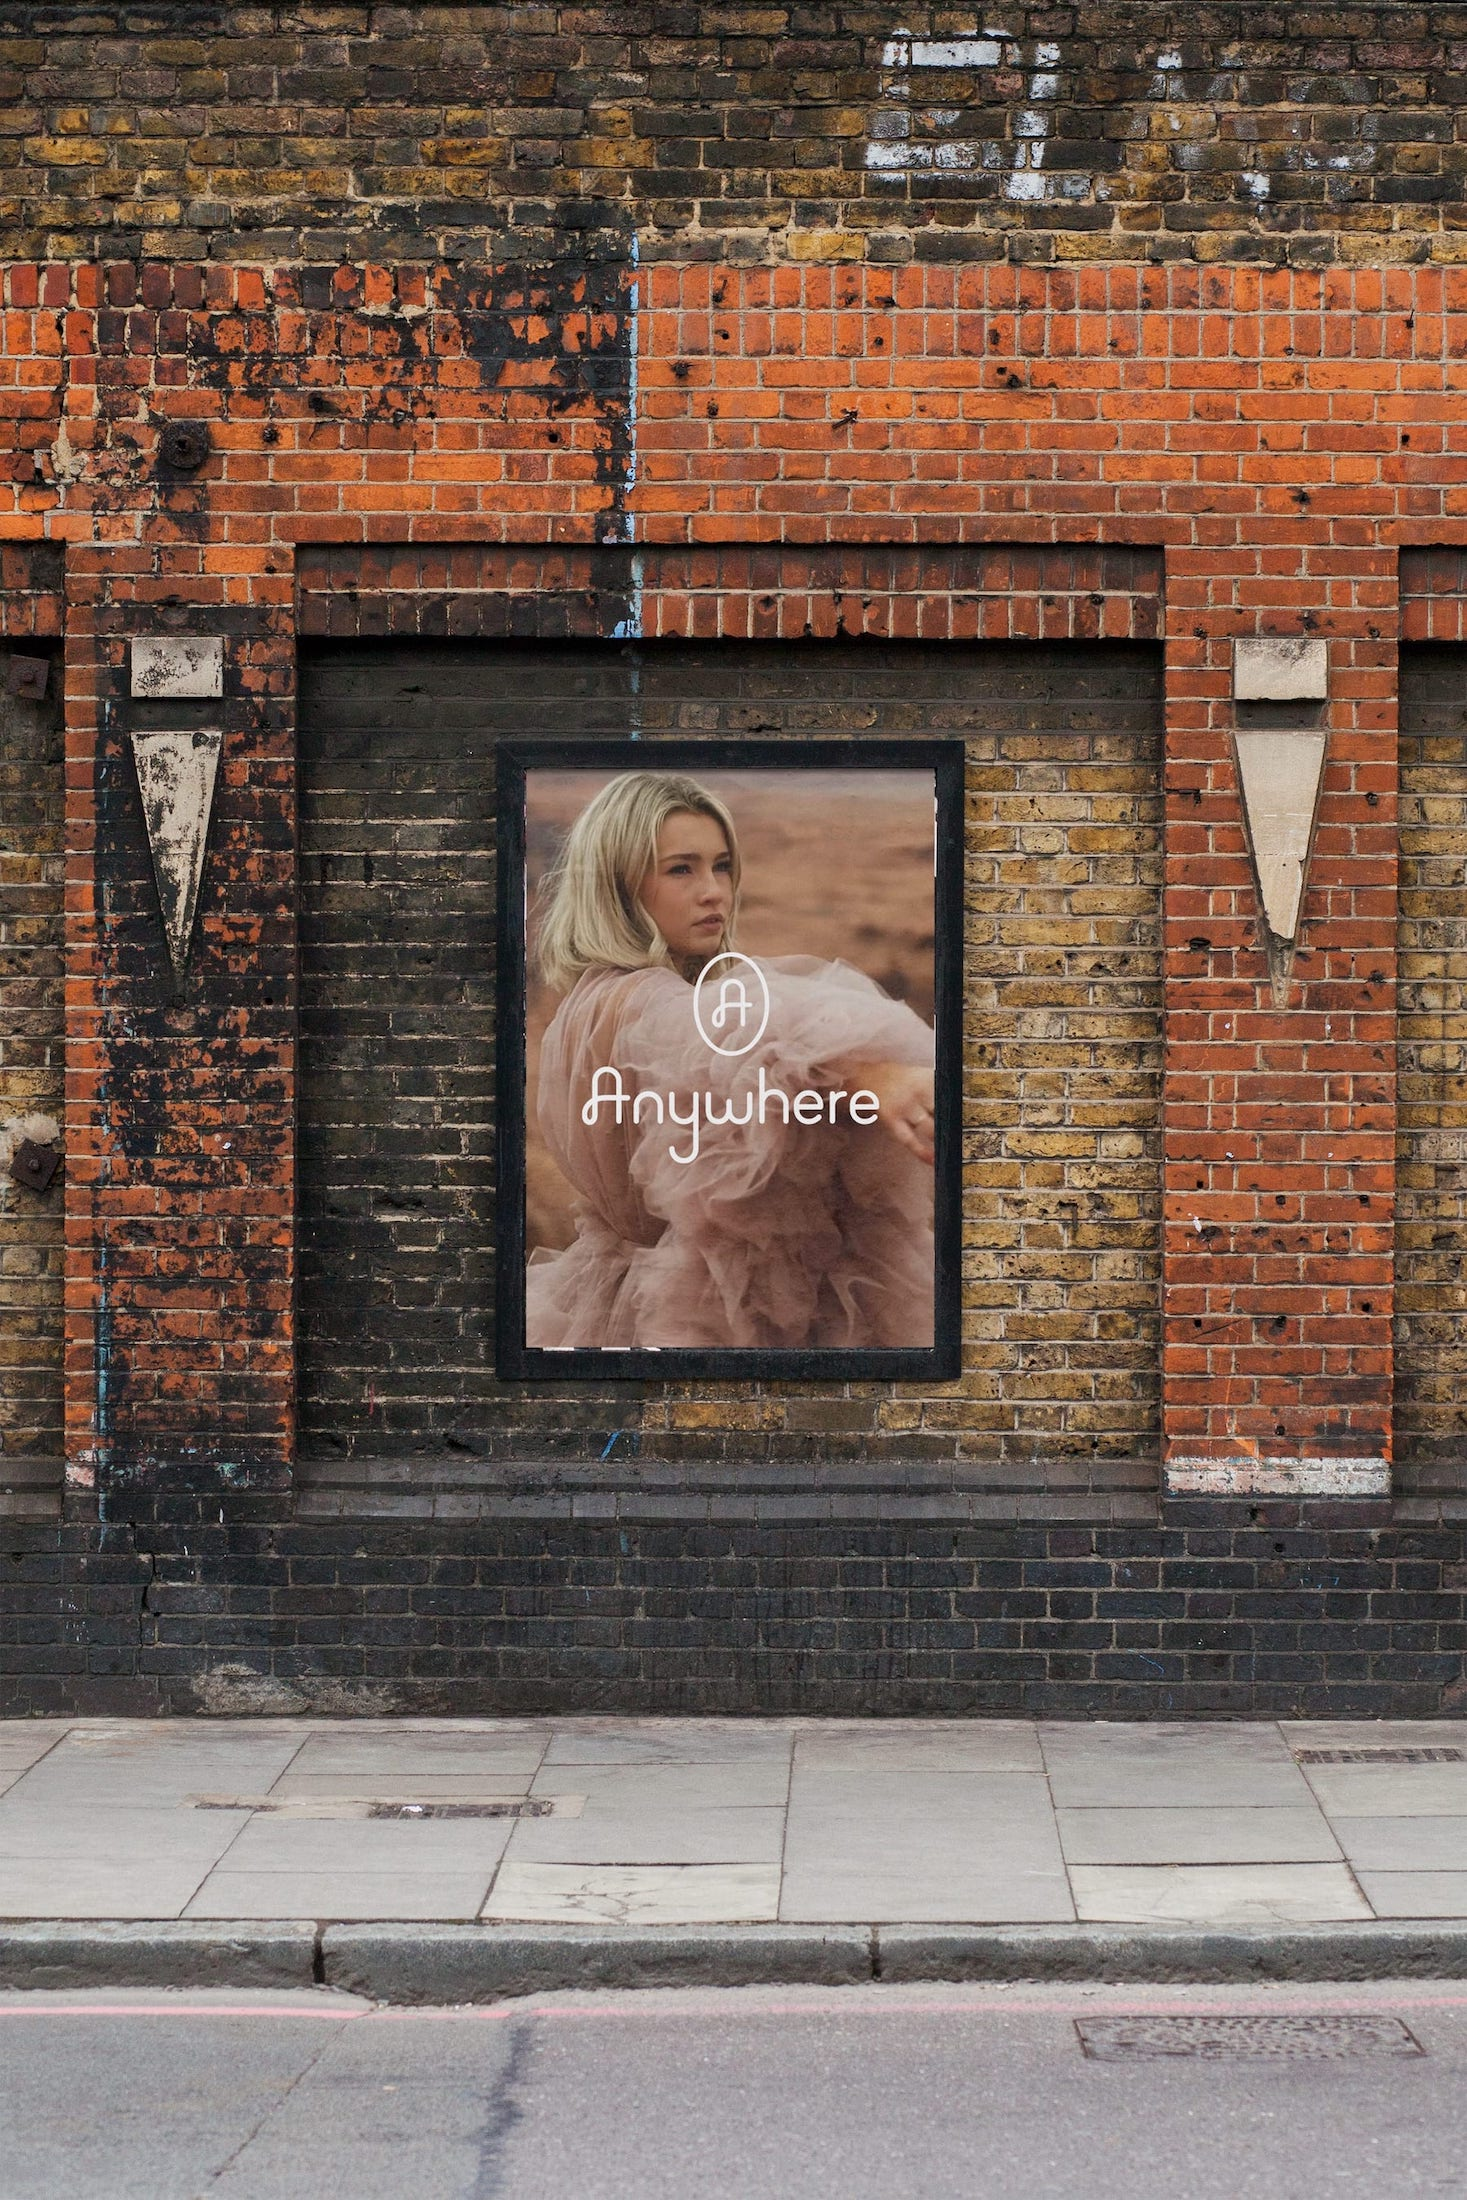 A billboard for Anywhere Films on a brick wall